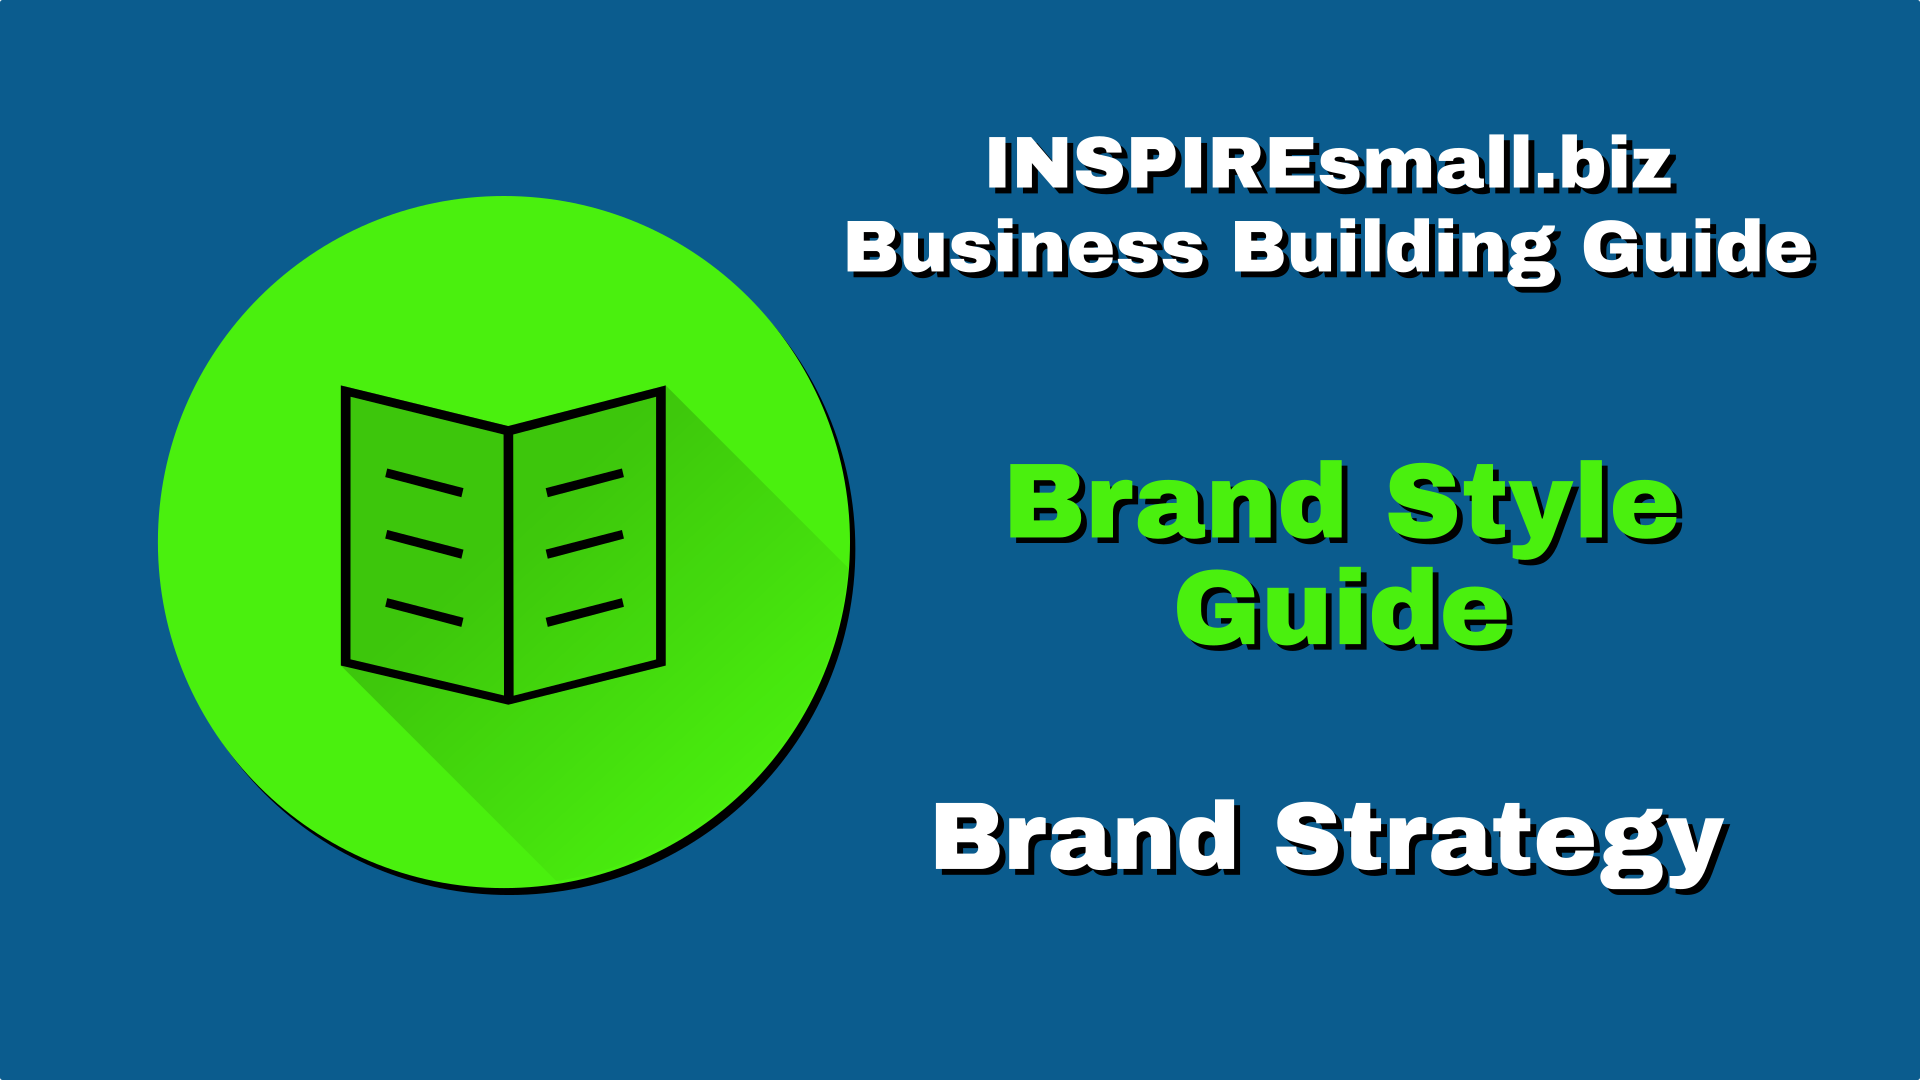 INSPIREsmall.biz Business Building Guide - Brand Strategy Section - Brand Style Guide